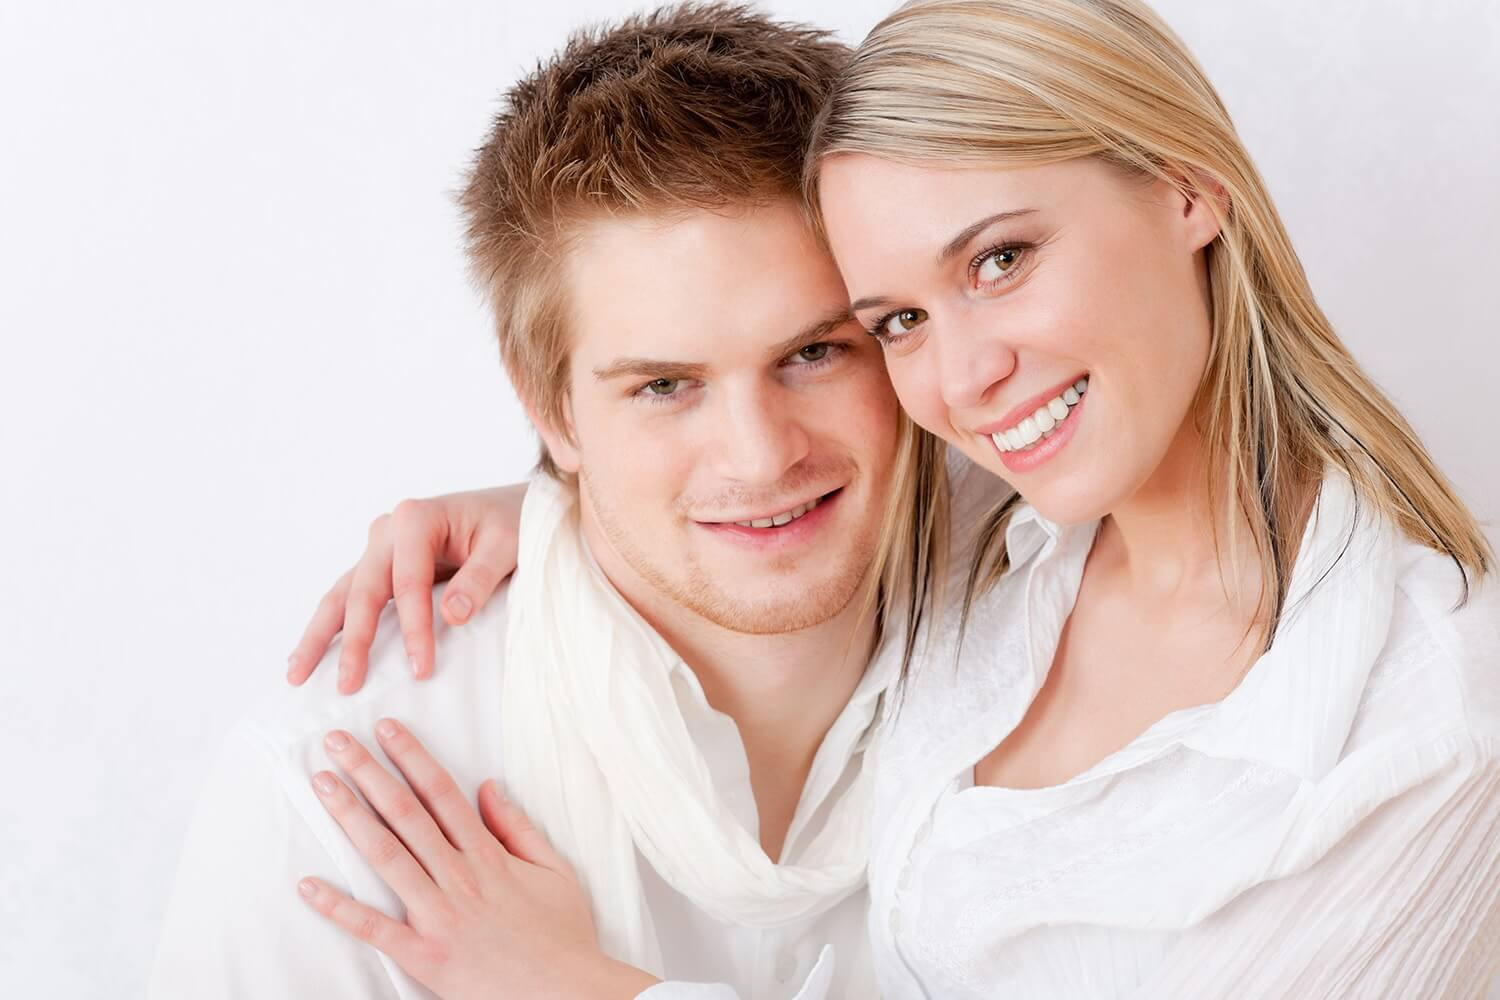 Love shy dating site